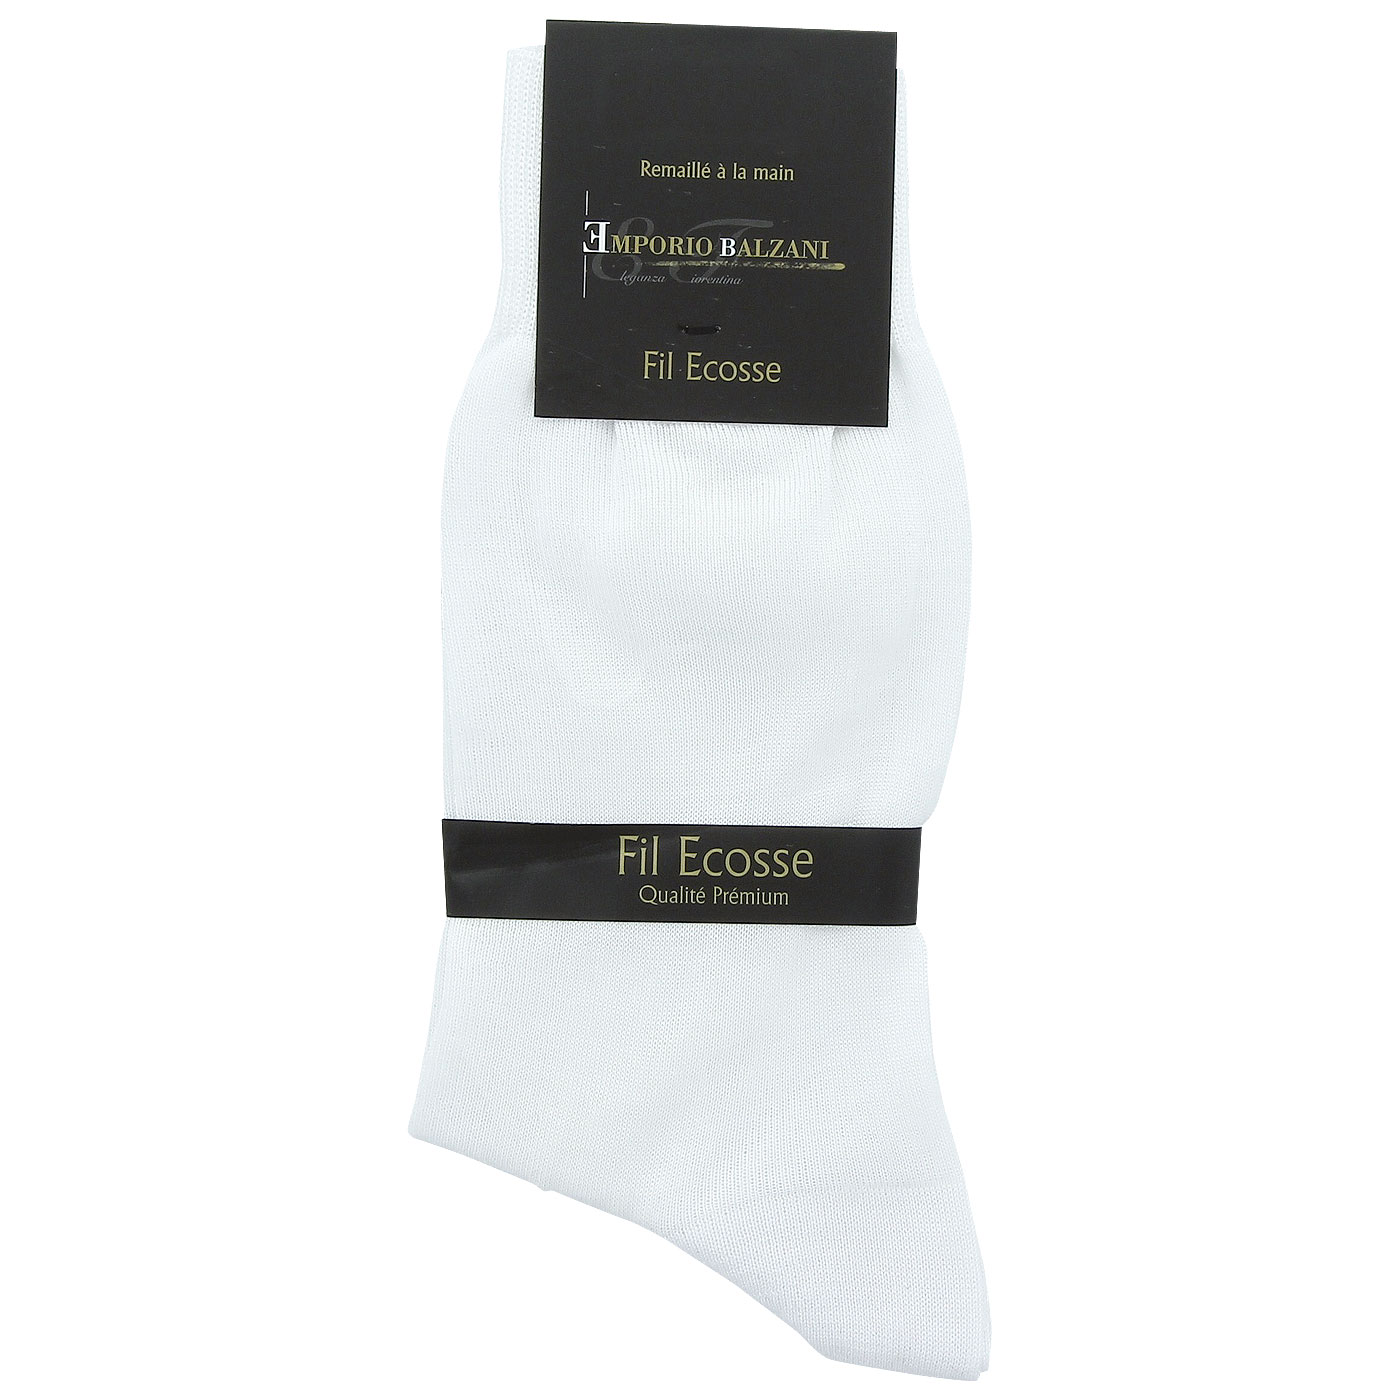 chausettes fil ecosse